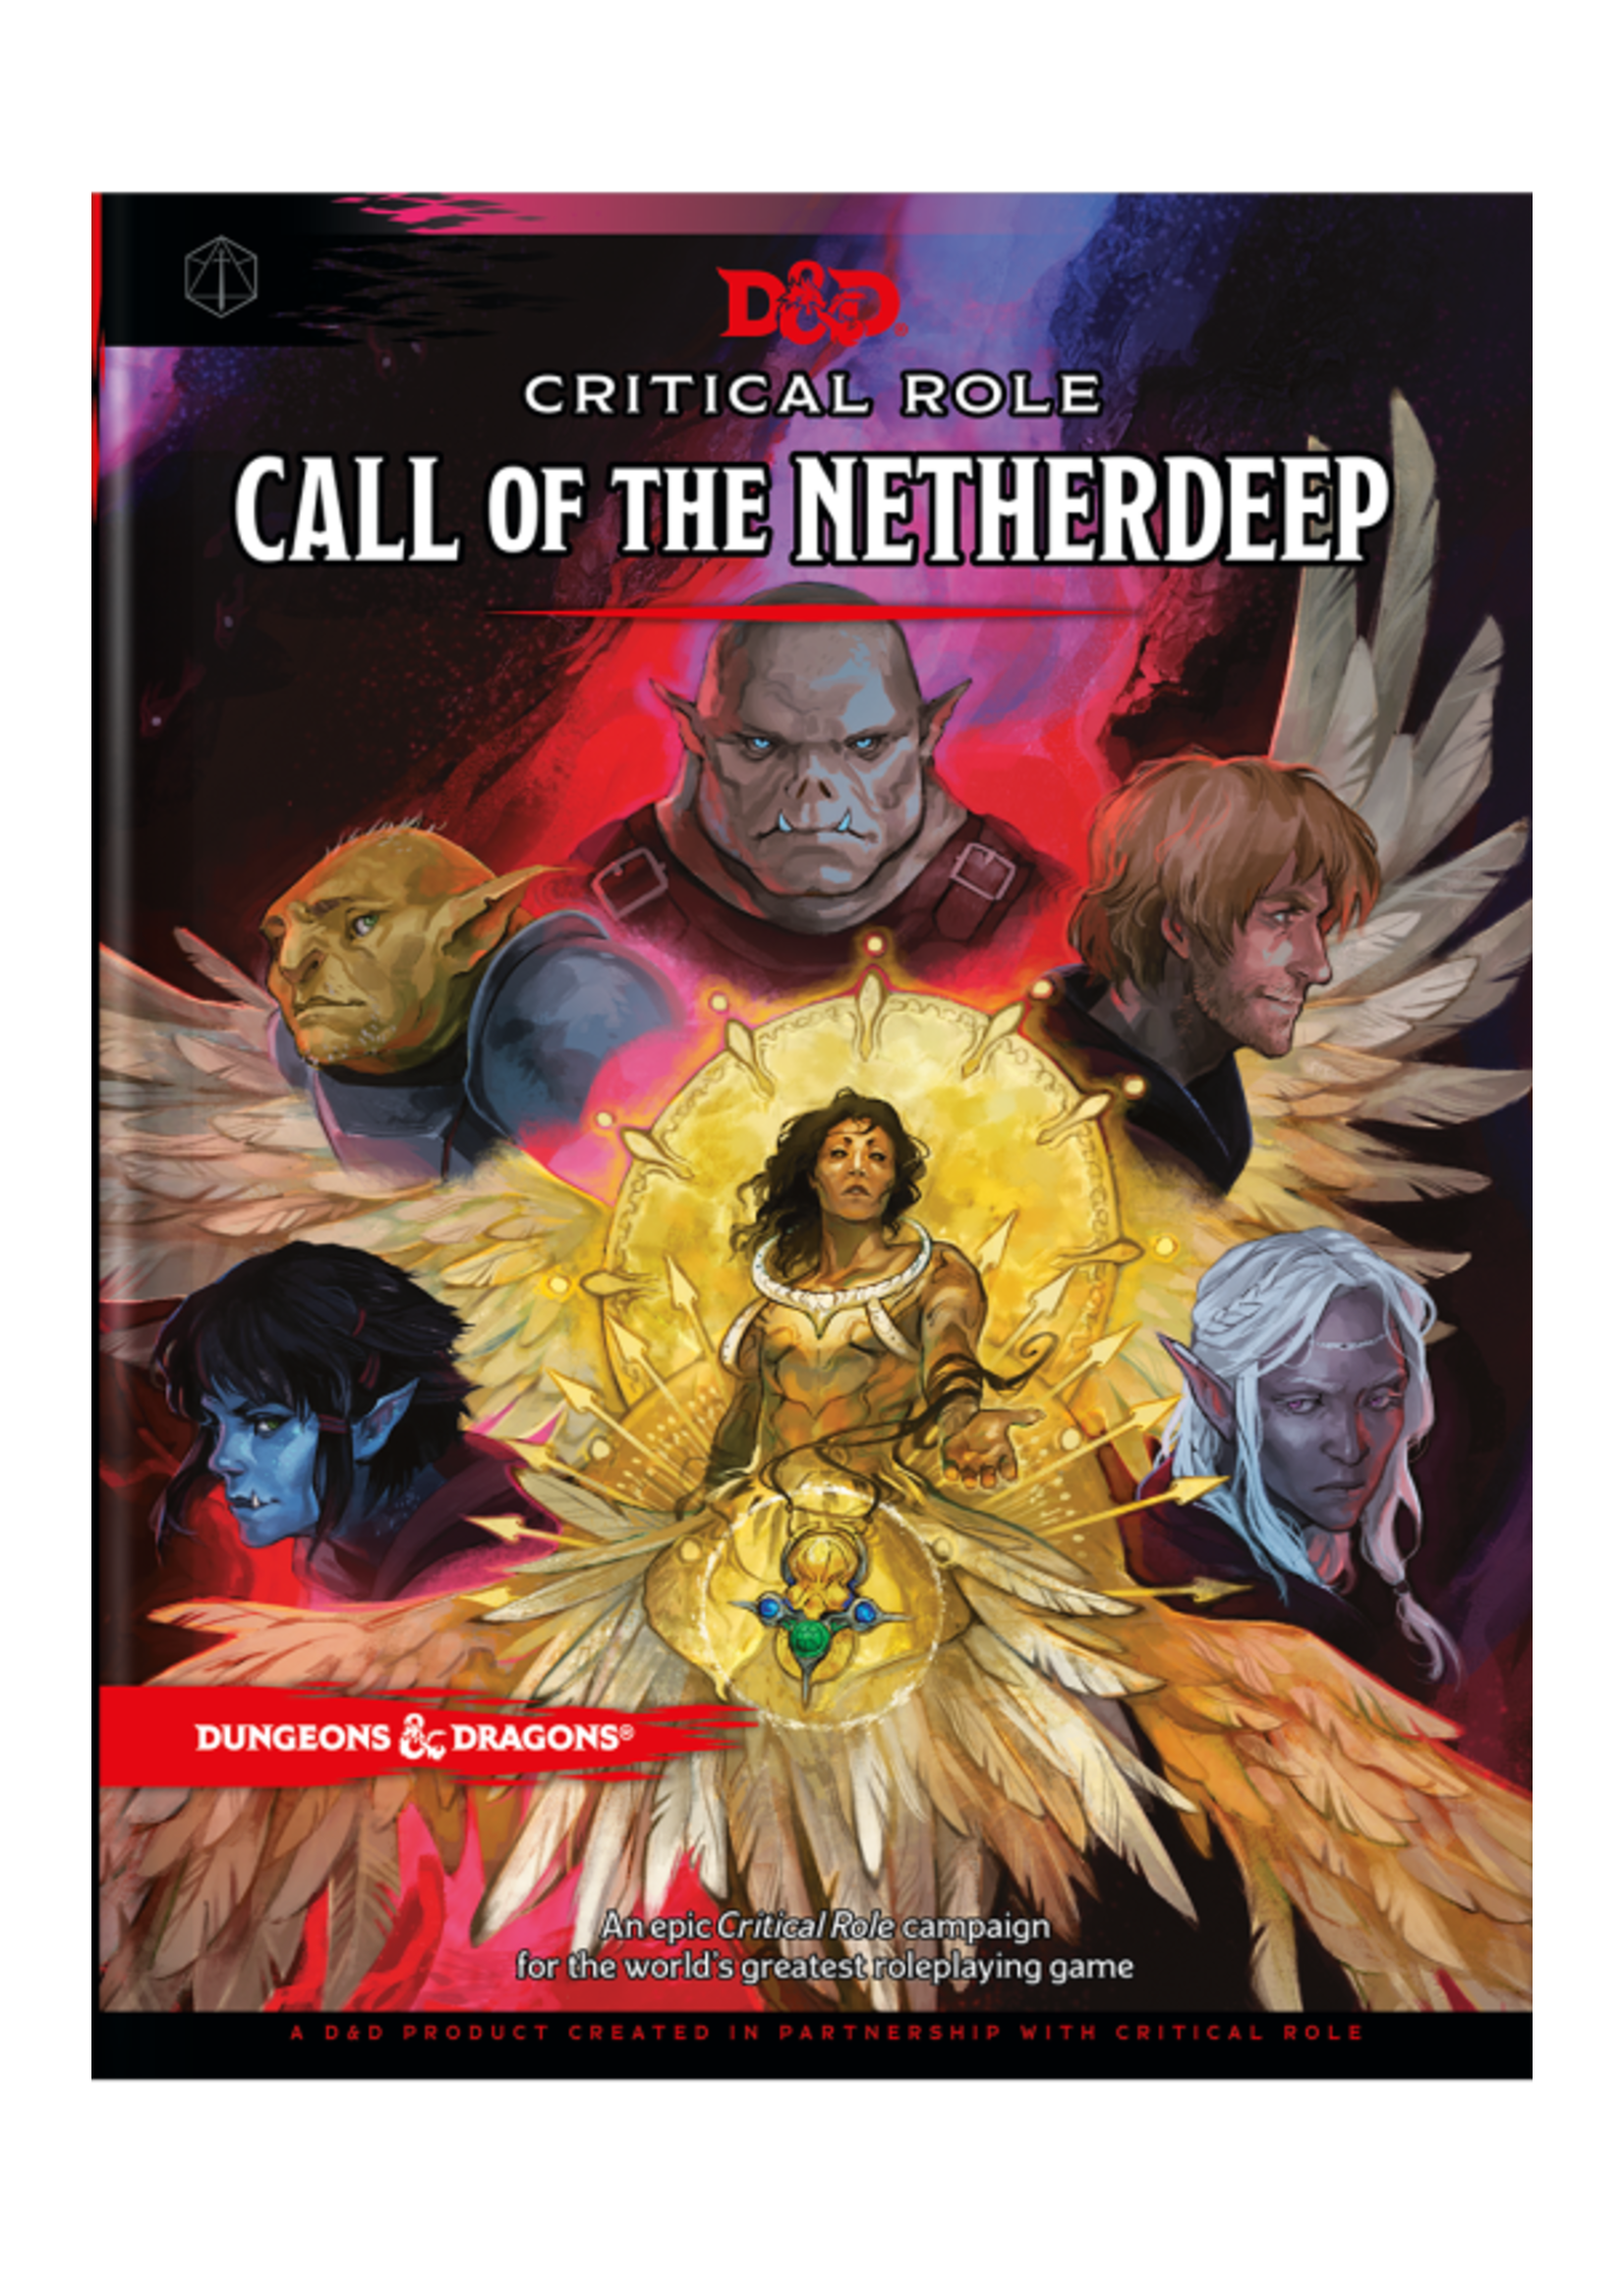 Dungeons & Dragons Critical Role: Call of the Netherdeep